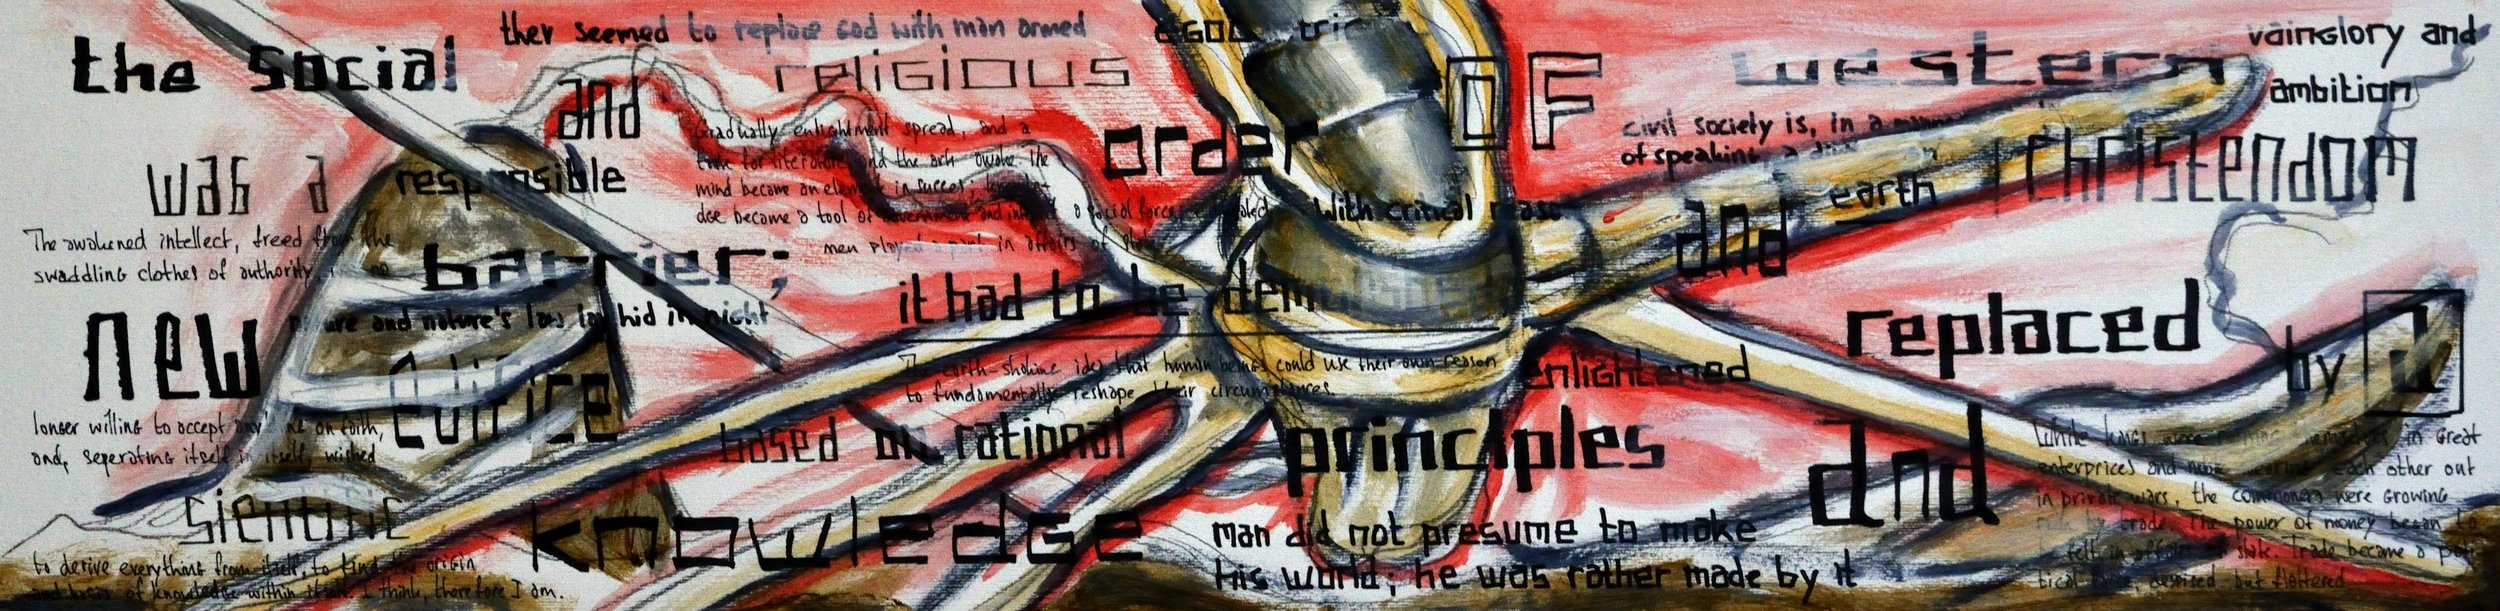 To Reshape the Instrument of Our Preservation, acrylic and marker on paper, 24x96cm